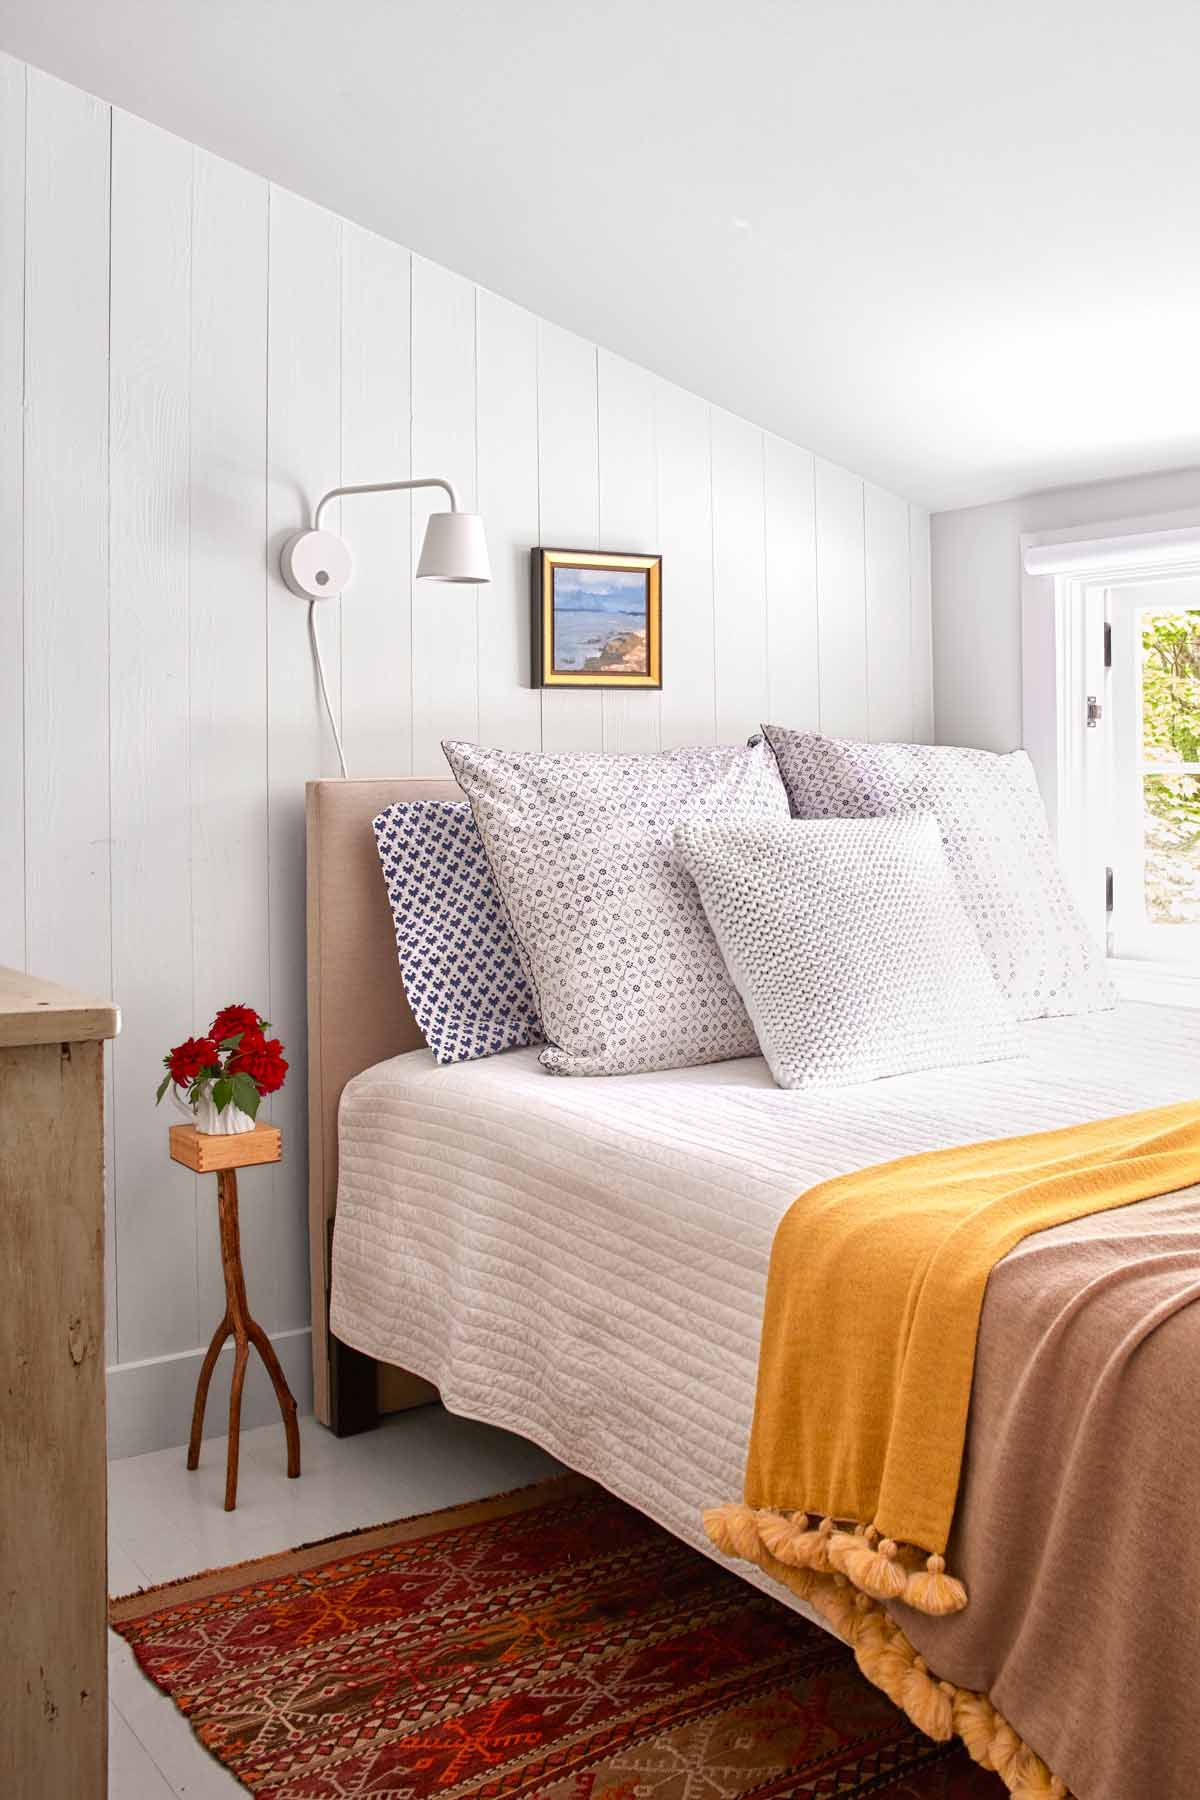 exceptional Second Bedroom Decorating Ideas Part - 2: guest room ideas